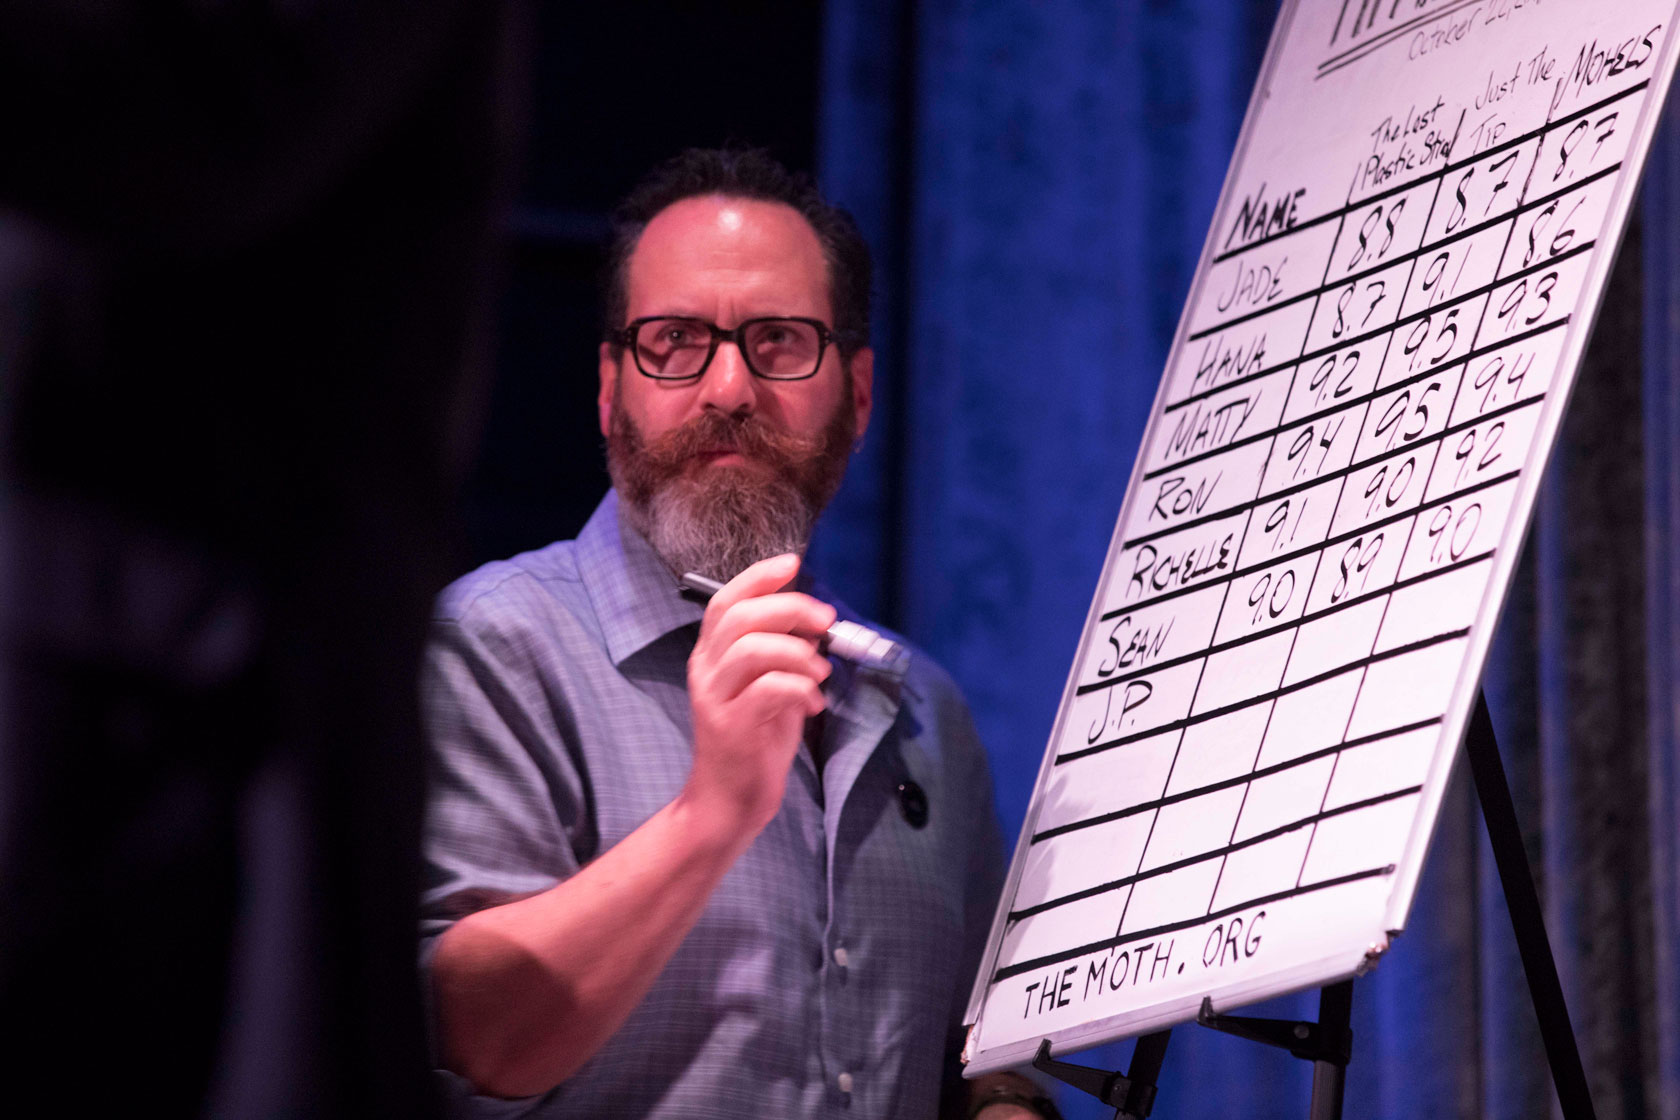 The Moth's LA StorySLAM producer, Gary Buchler, keeps a watchful eye on the evening's scoreboard with an Expo marker at the ready. (Photo credit: Ricky Steel & The Moth)